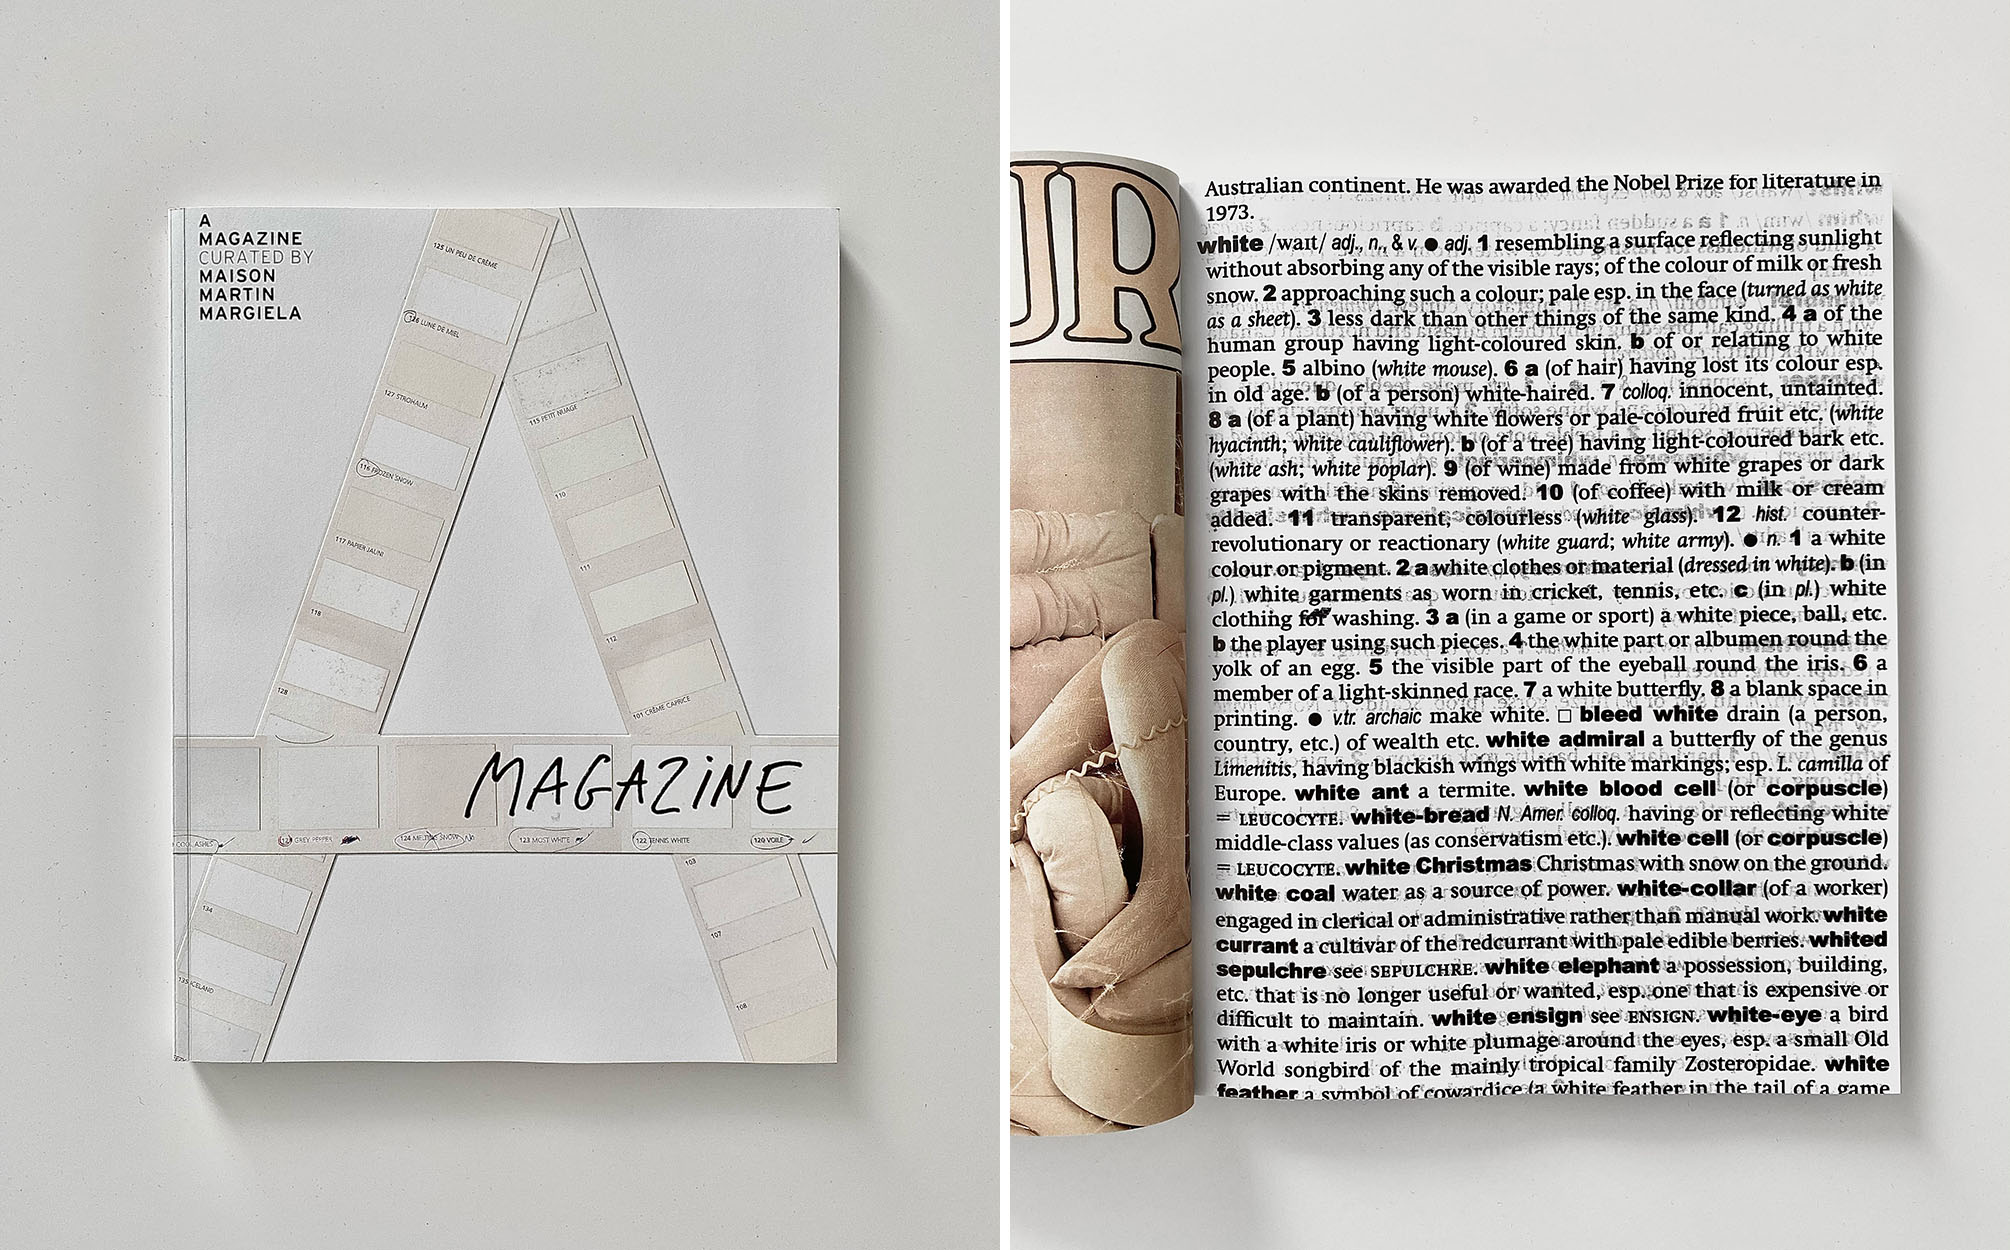 a magazine curated by maison martin margiela reprint 2021 cover